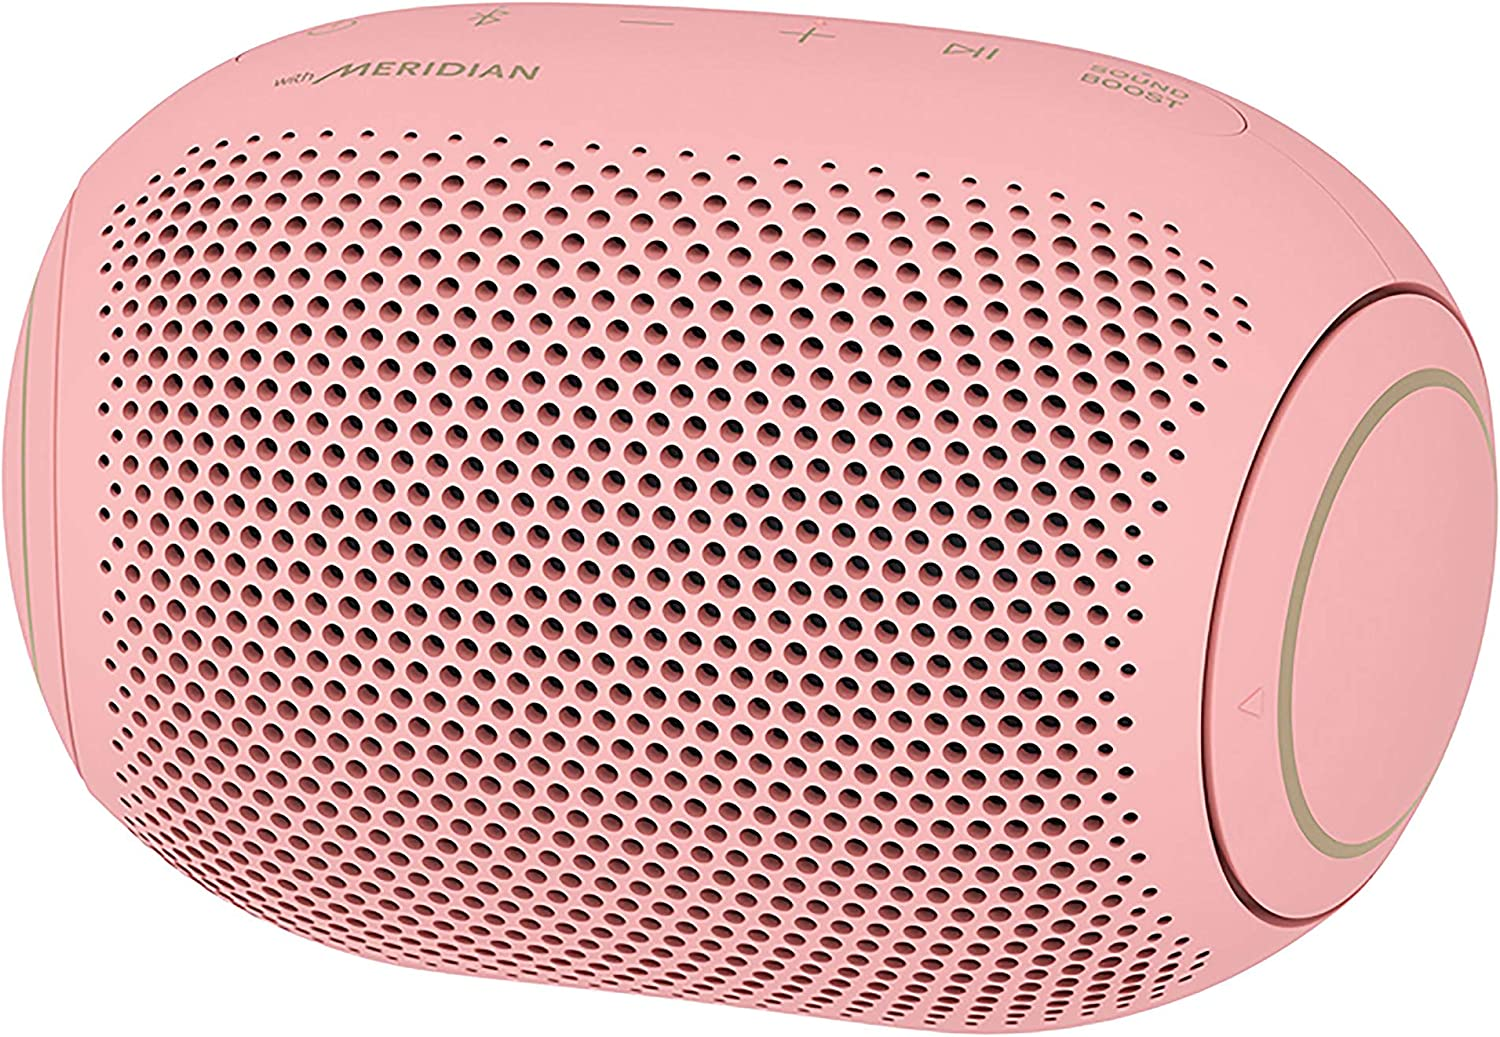 LG PL2P XBOOM Go Water-Resistant Wireless Bluetooth Party Speaker with Up to 10 Hours Playback – Bubble Gum, Pink